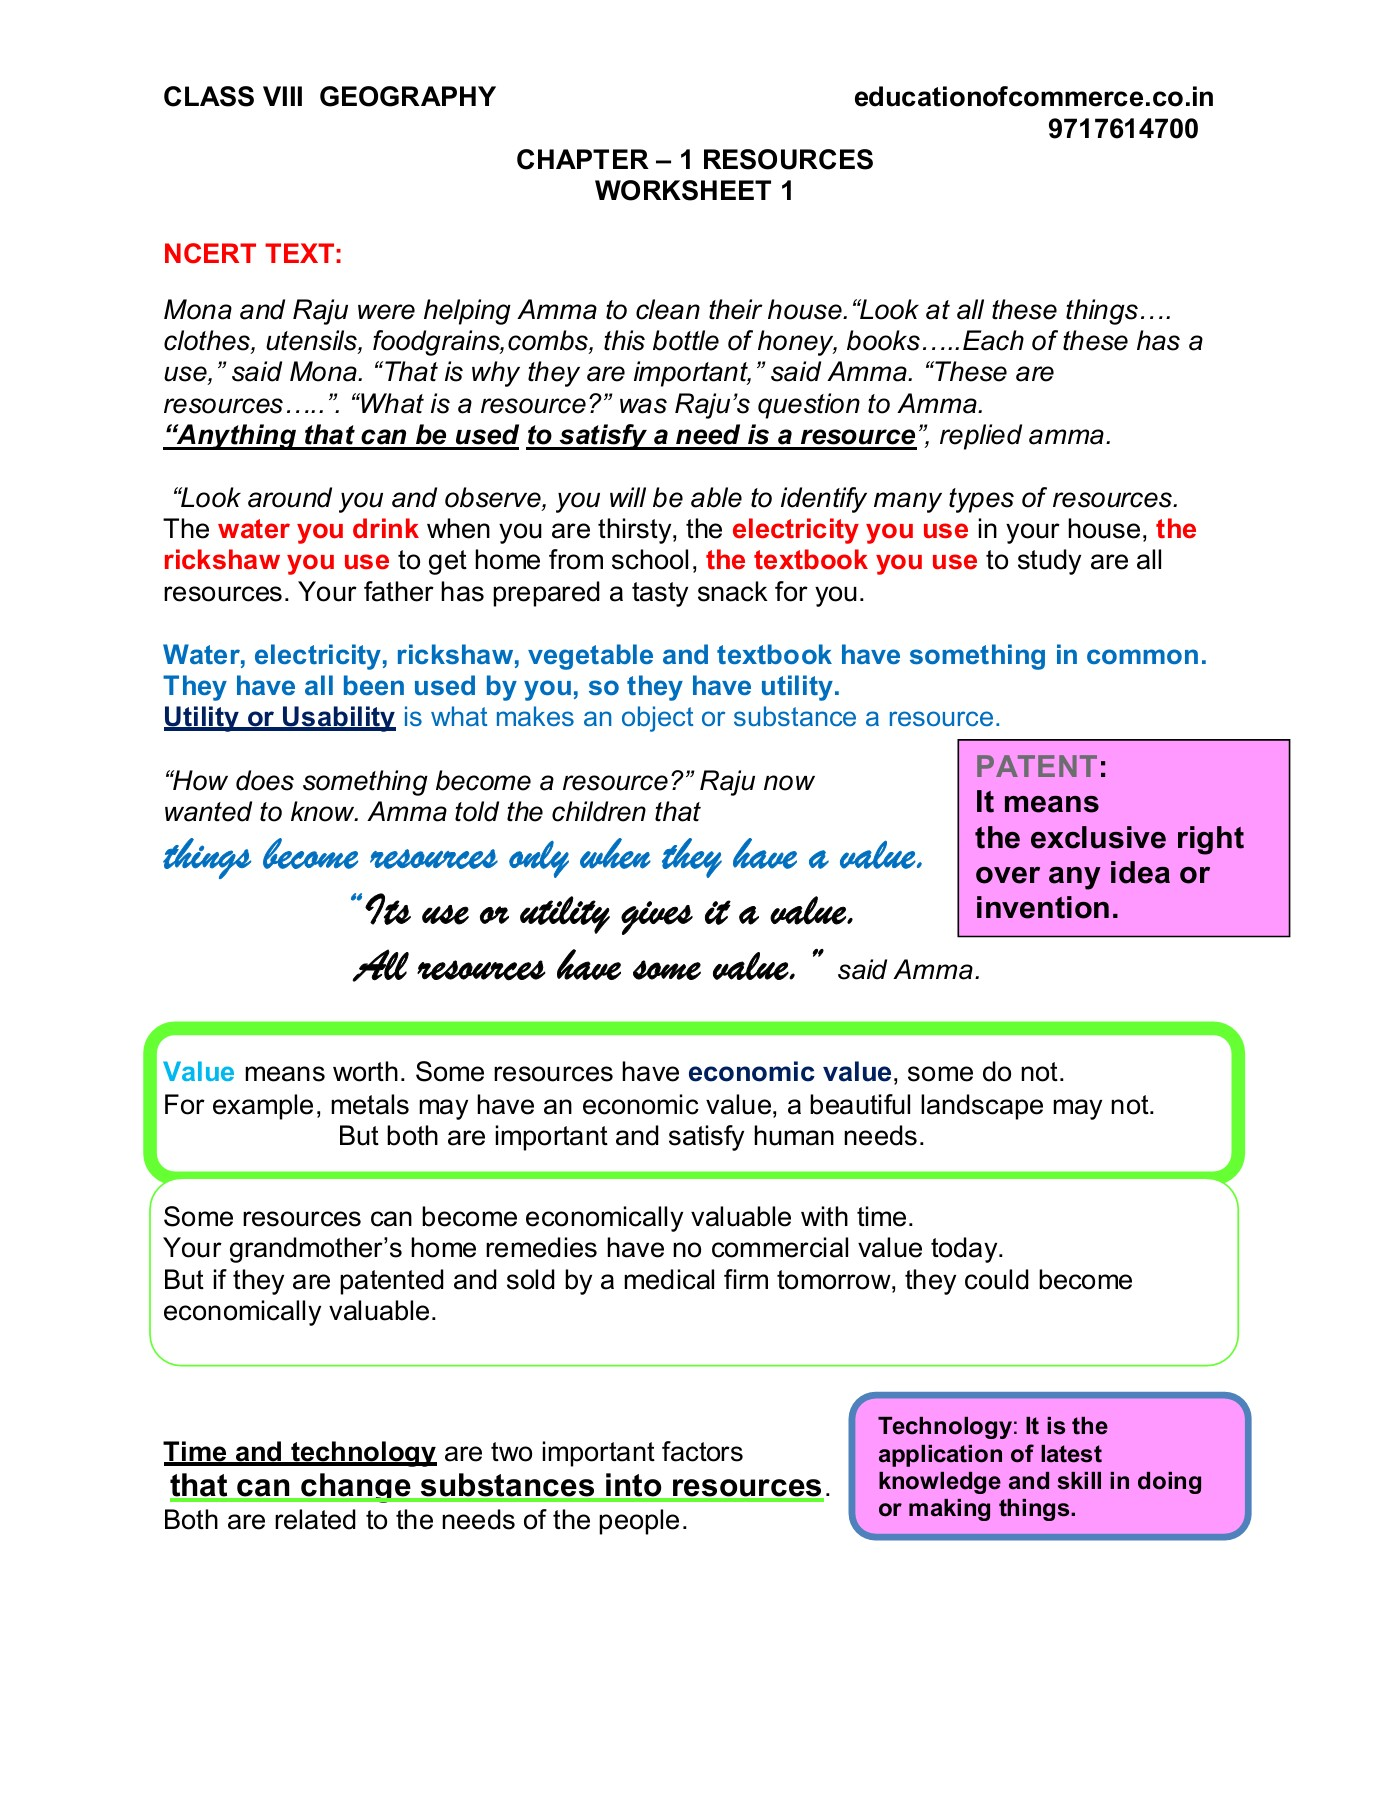 medium resolution of Worksheet 1 - Geography (Grade VIII) - Chapter - 1 (Resources) - Topic  Utility